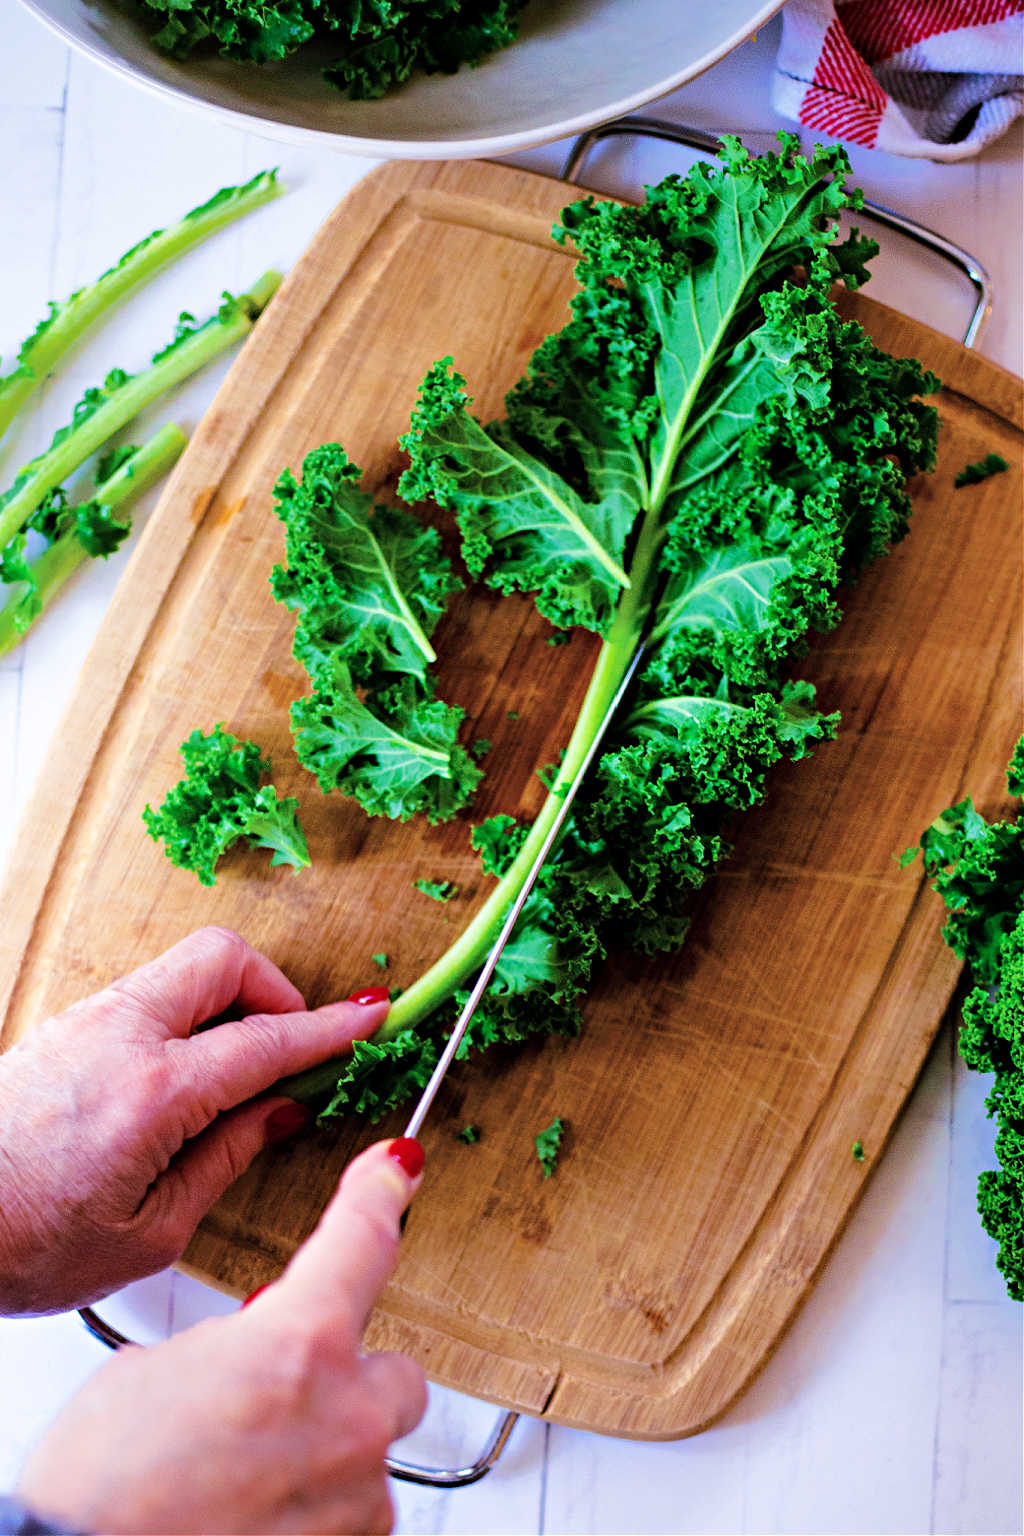 cutting kale leaves away from the stem on a cutting board